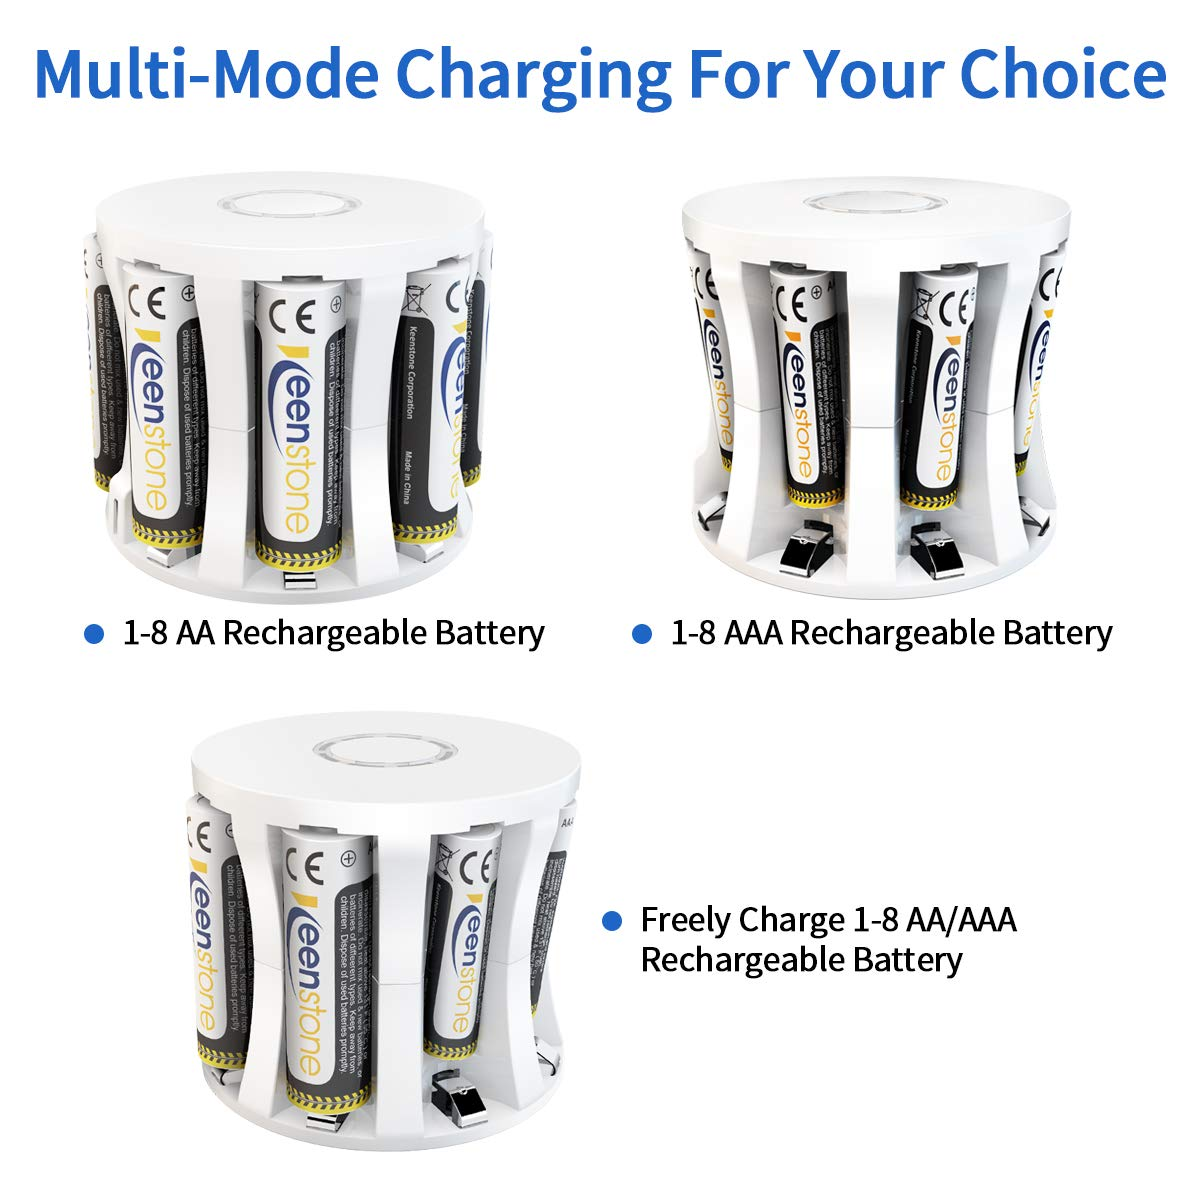 AAA Rechargeable Batterys and Charger, Keenstone Ni-MH AAA 1100mah 1.2v Battery with High Capacity, Low Self Discharge and 8-Slot Battery Charger for AA AAA Batteries (8 Pack)